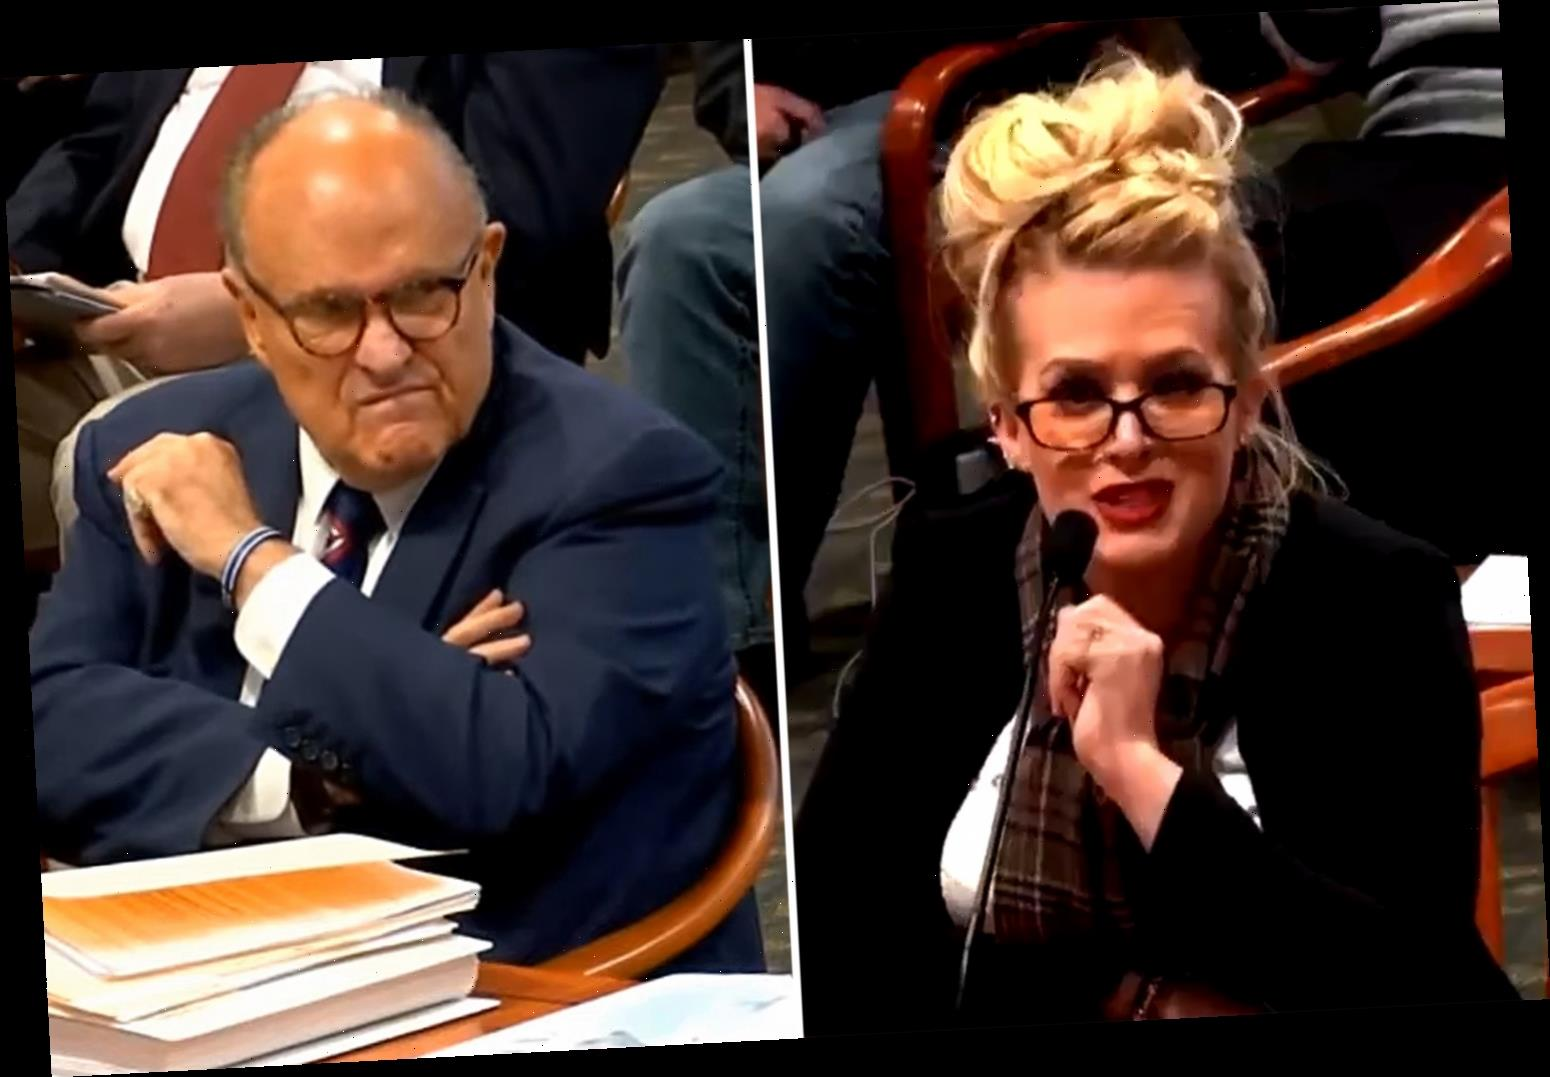 Rudy Giuliani awkwardly SHUSHES 'star' witness testifying to 'voter fraud' as another says 'all Chinese look alike'